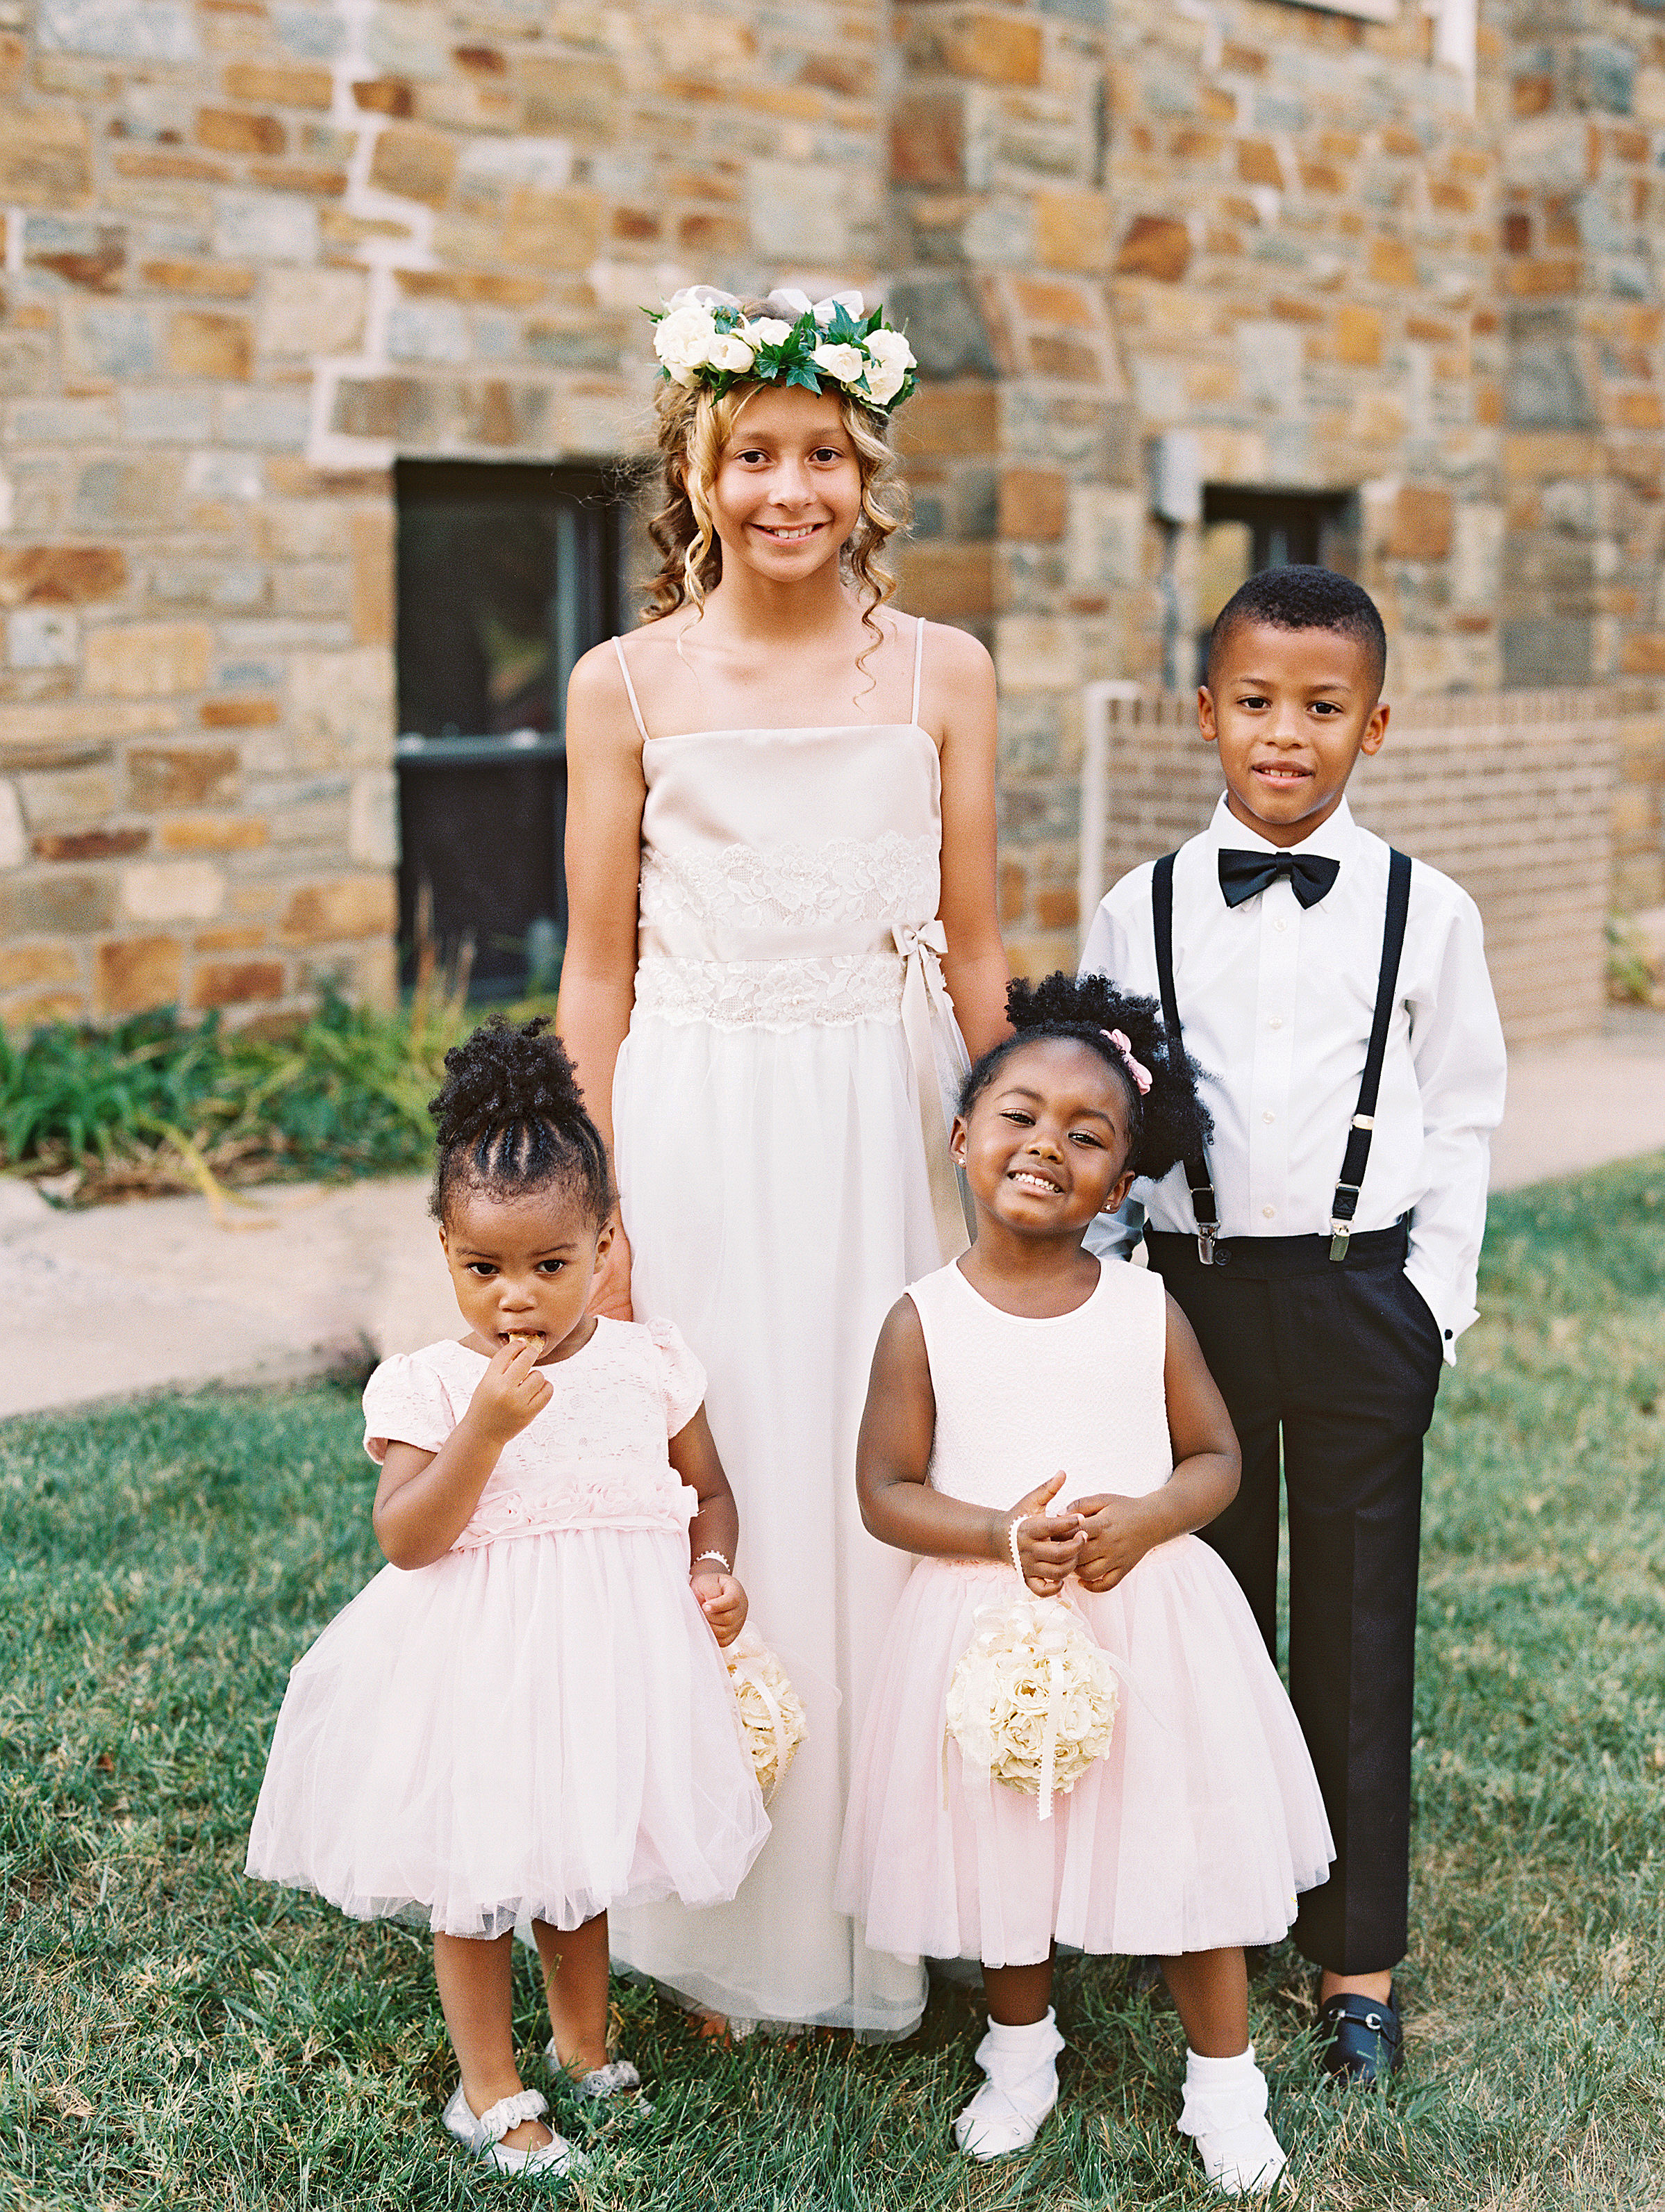 Tips for Making a Shy Flower Girl or Ring Bearer Feel Comfortable on the Wedding Day